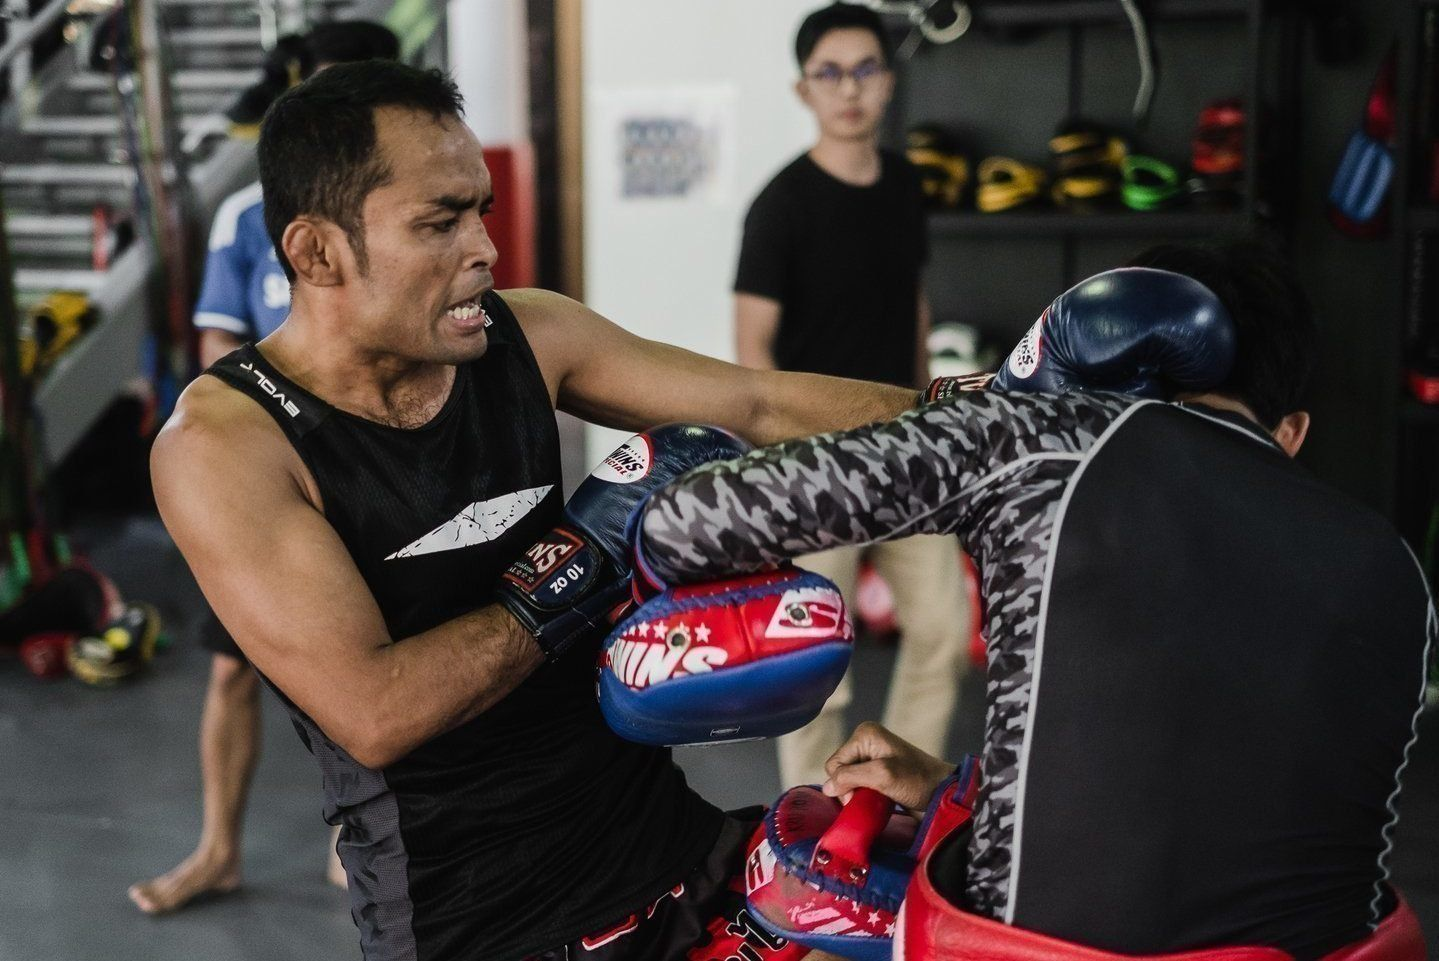 Dejdamrong throws a knee during a Muay Thai class at Evolve MMA in Singapore.